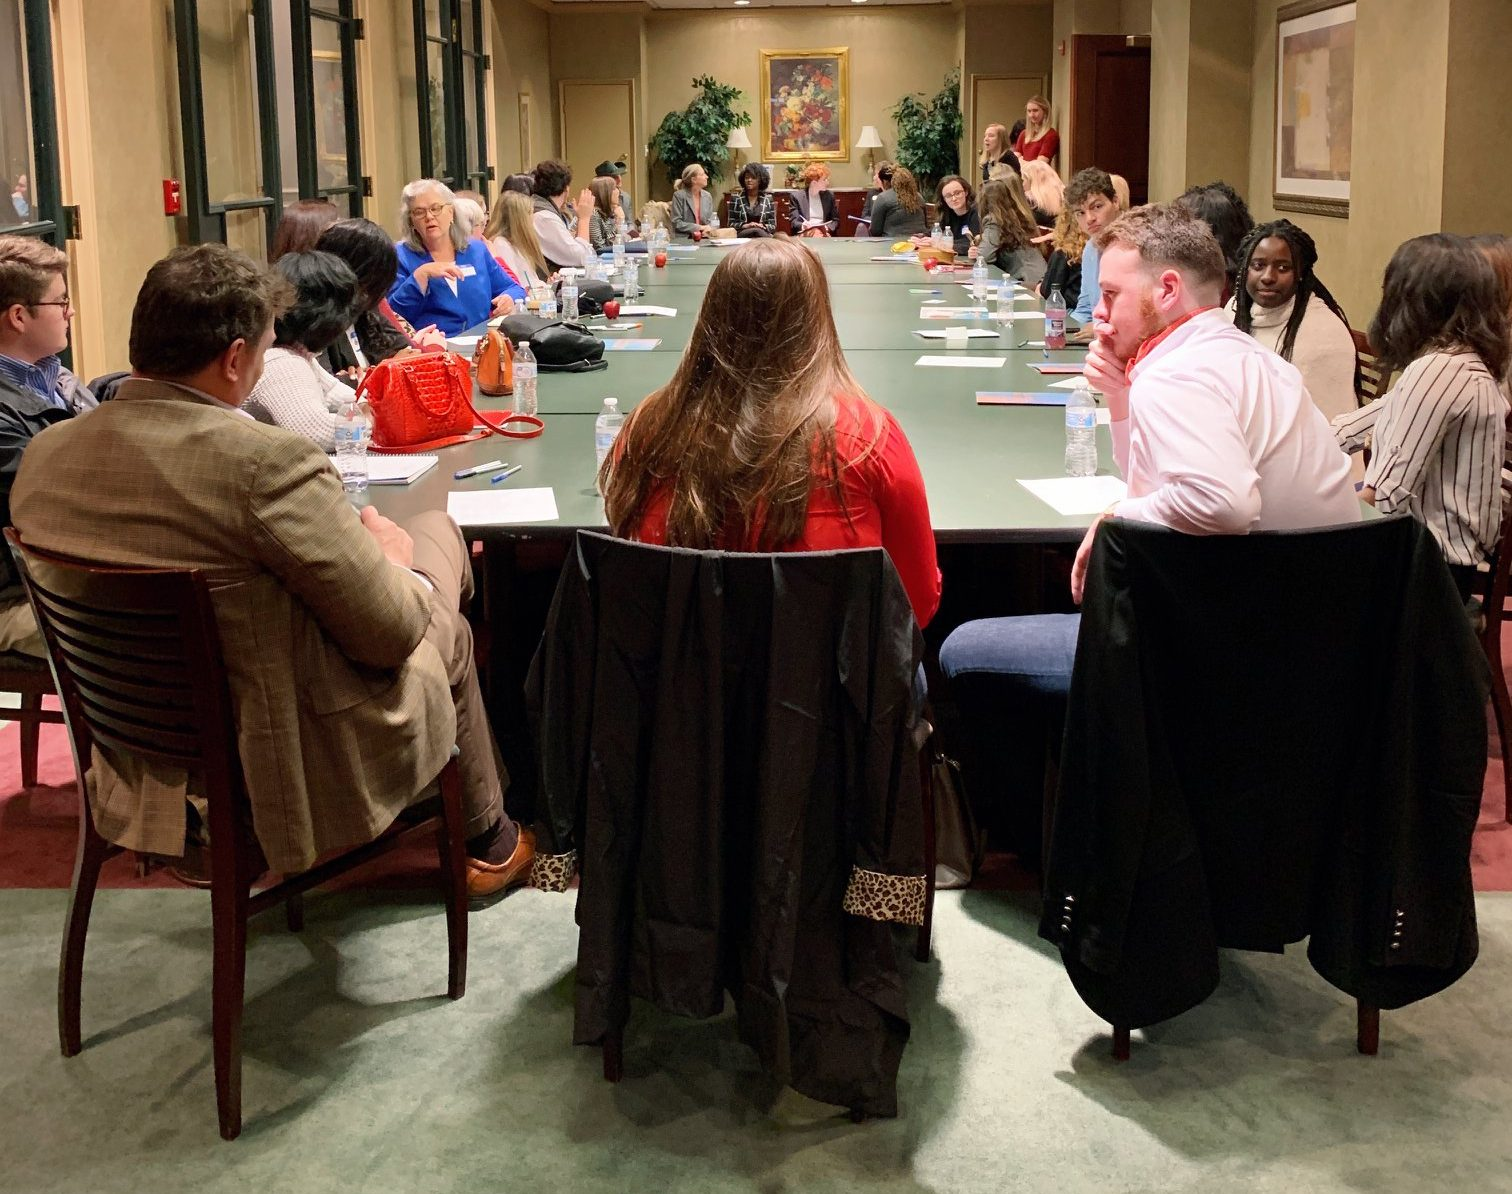 Interns sit around a large table discussing issues.